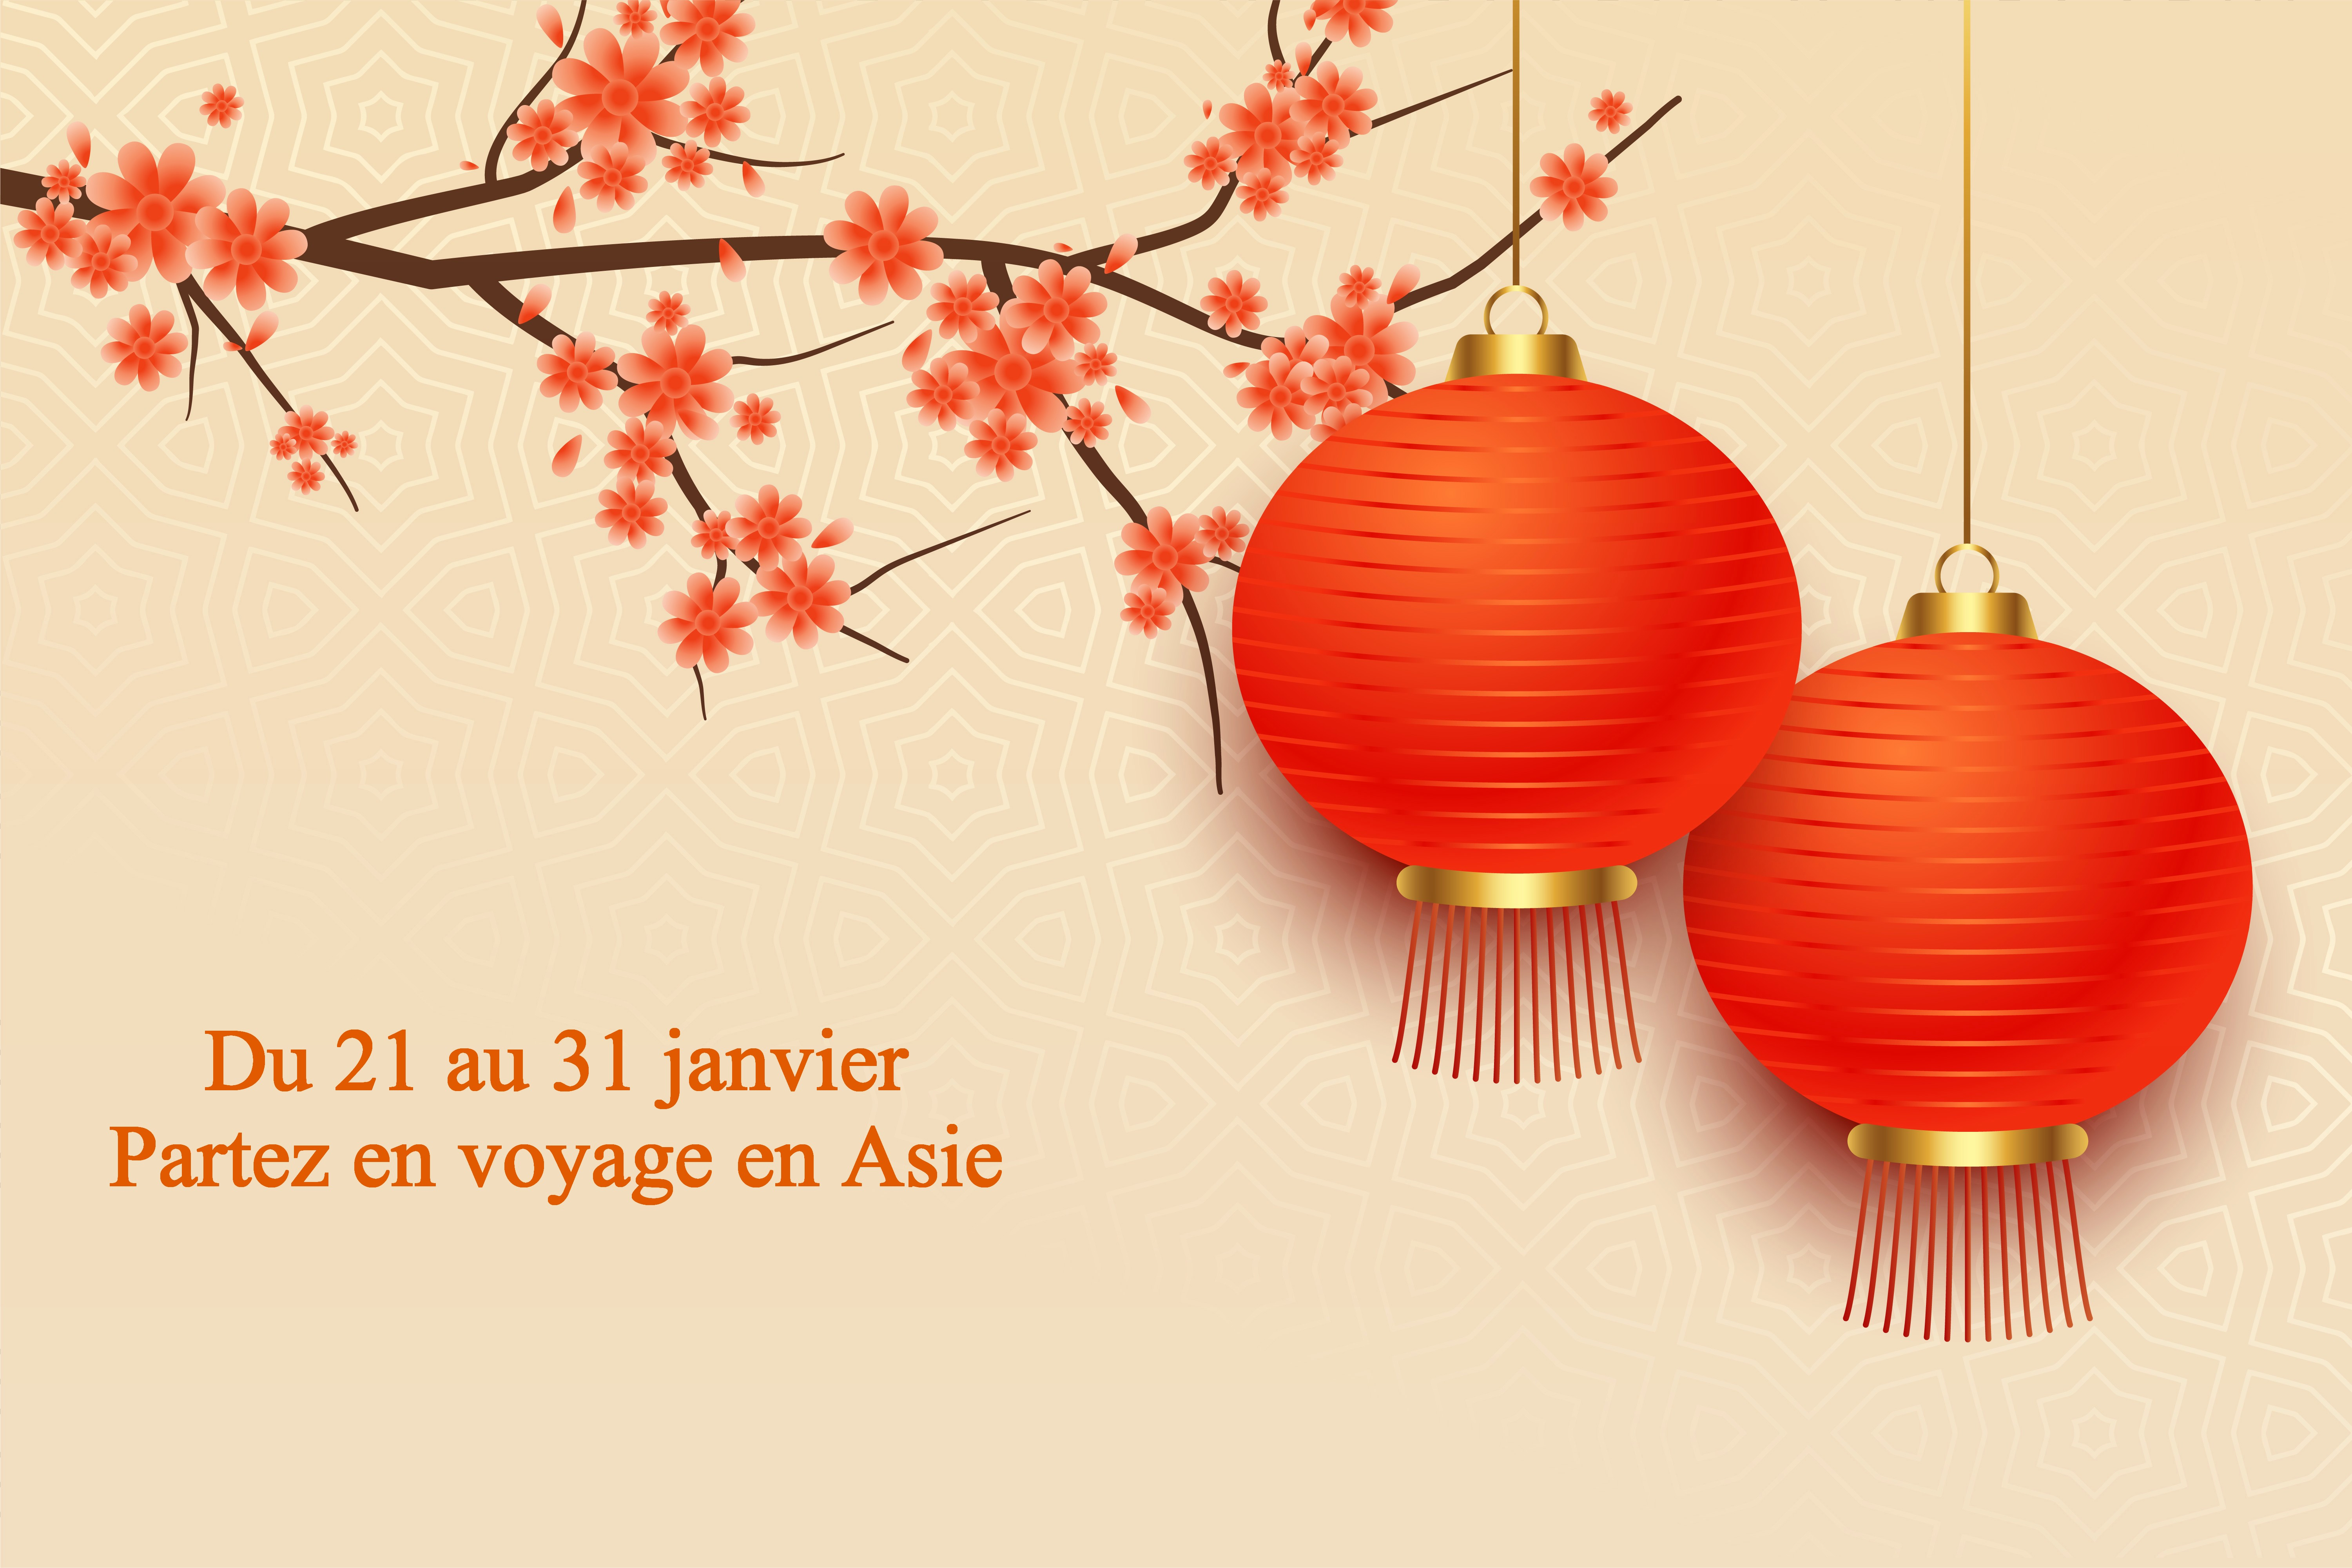 slider-nouvel-an-chinois